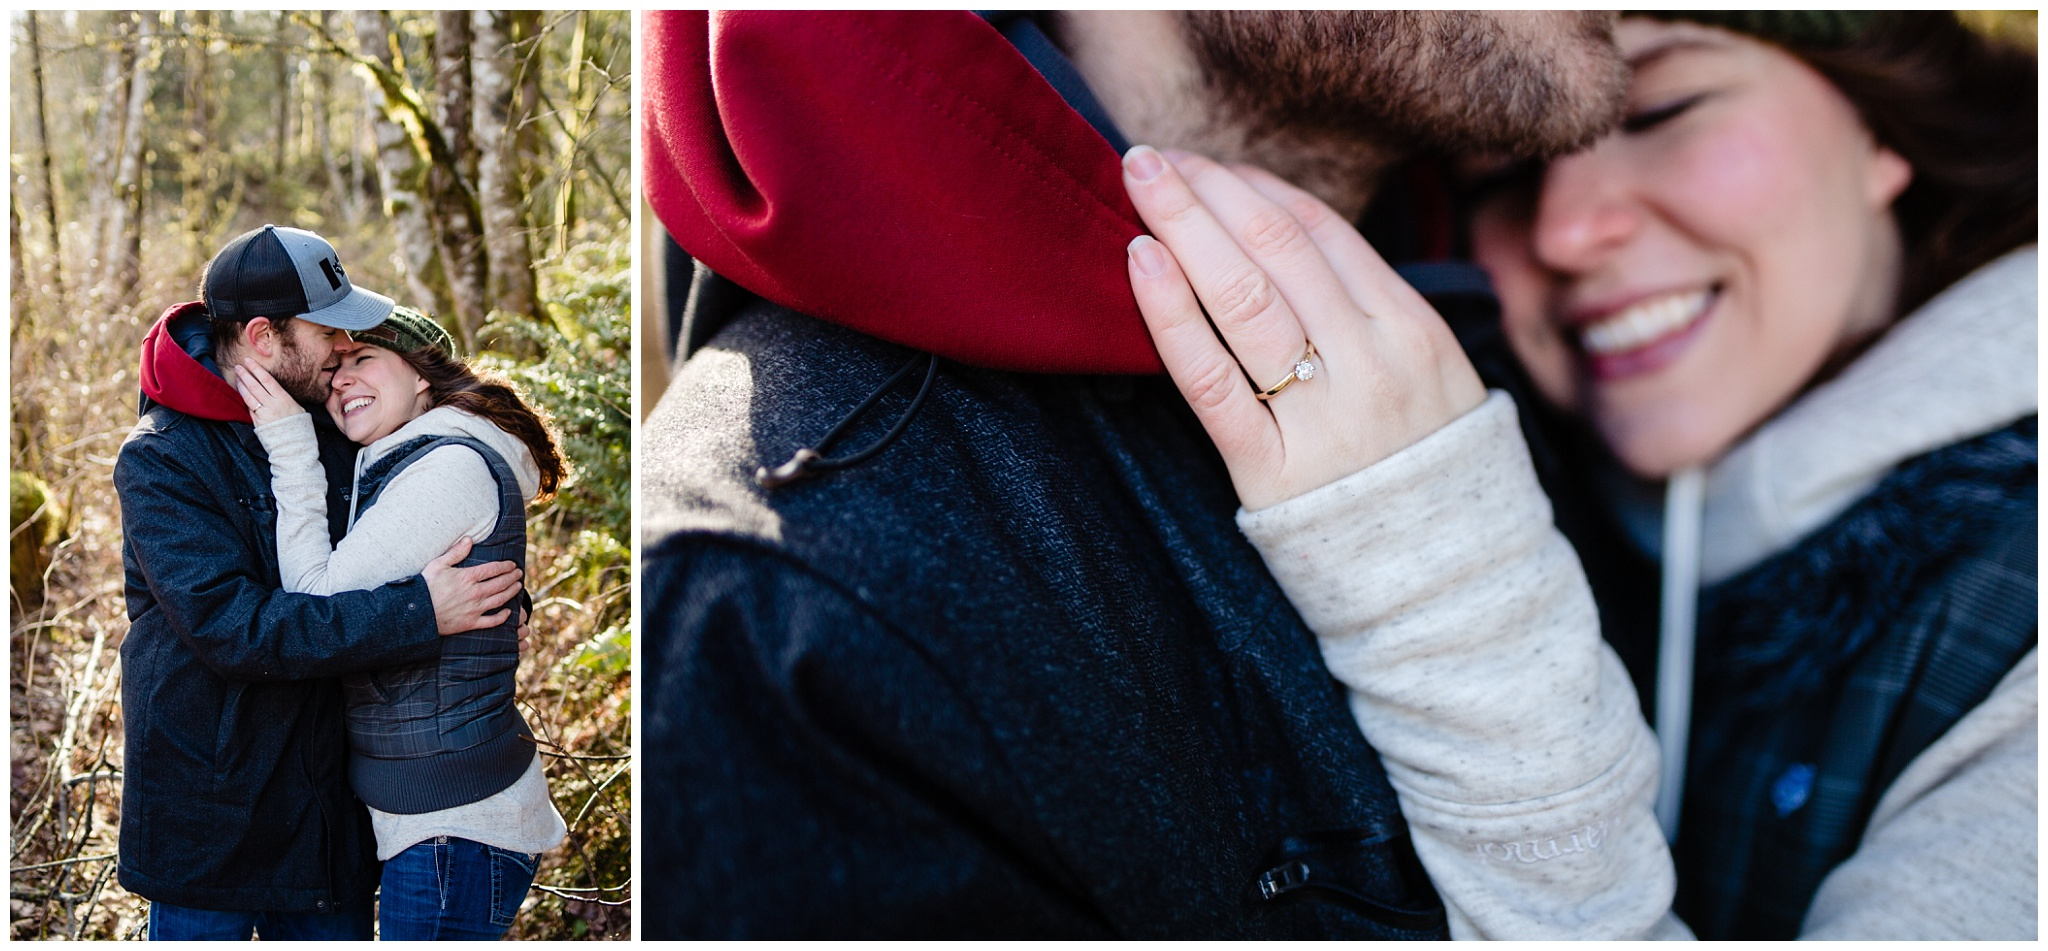 Stave Lake Adventure Engagement  Photographer Mission Fun Candid Natural Romantic Couple Poses_0011.jpg